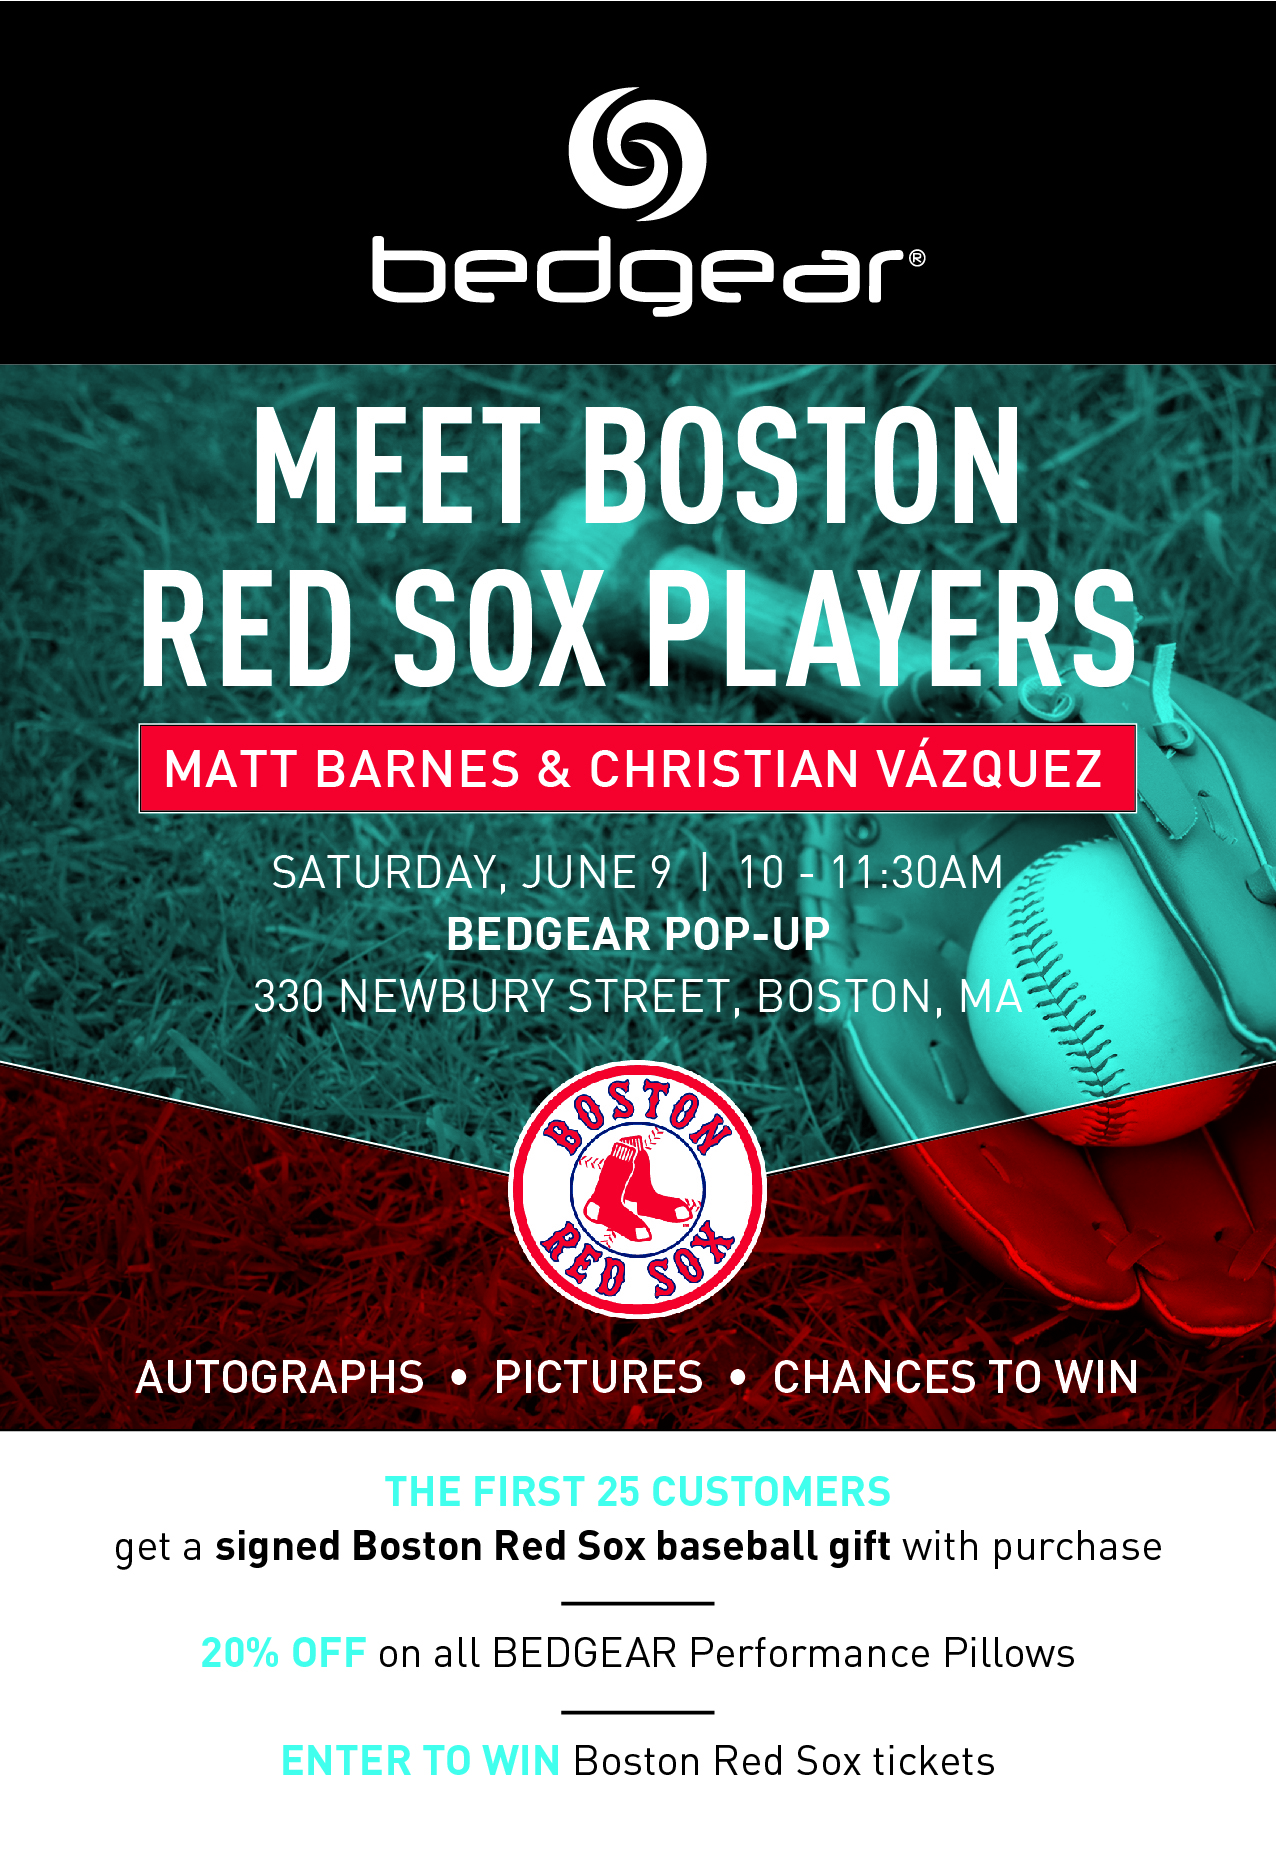 Come Meet Boston Red Sox Players 060918